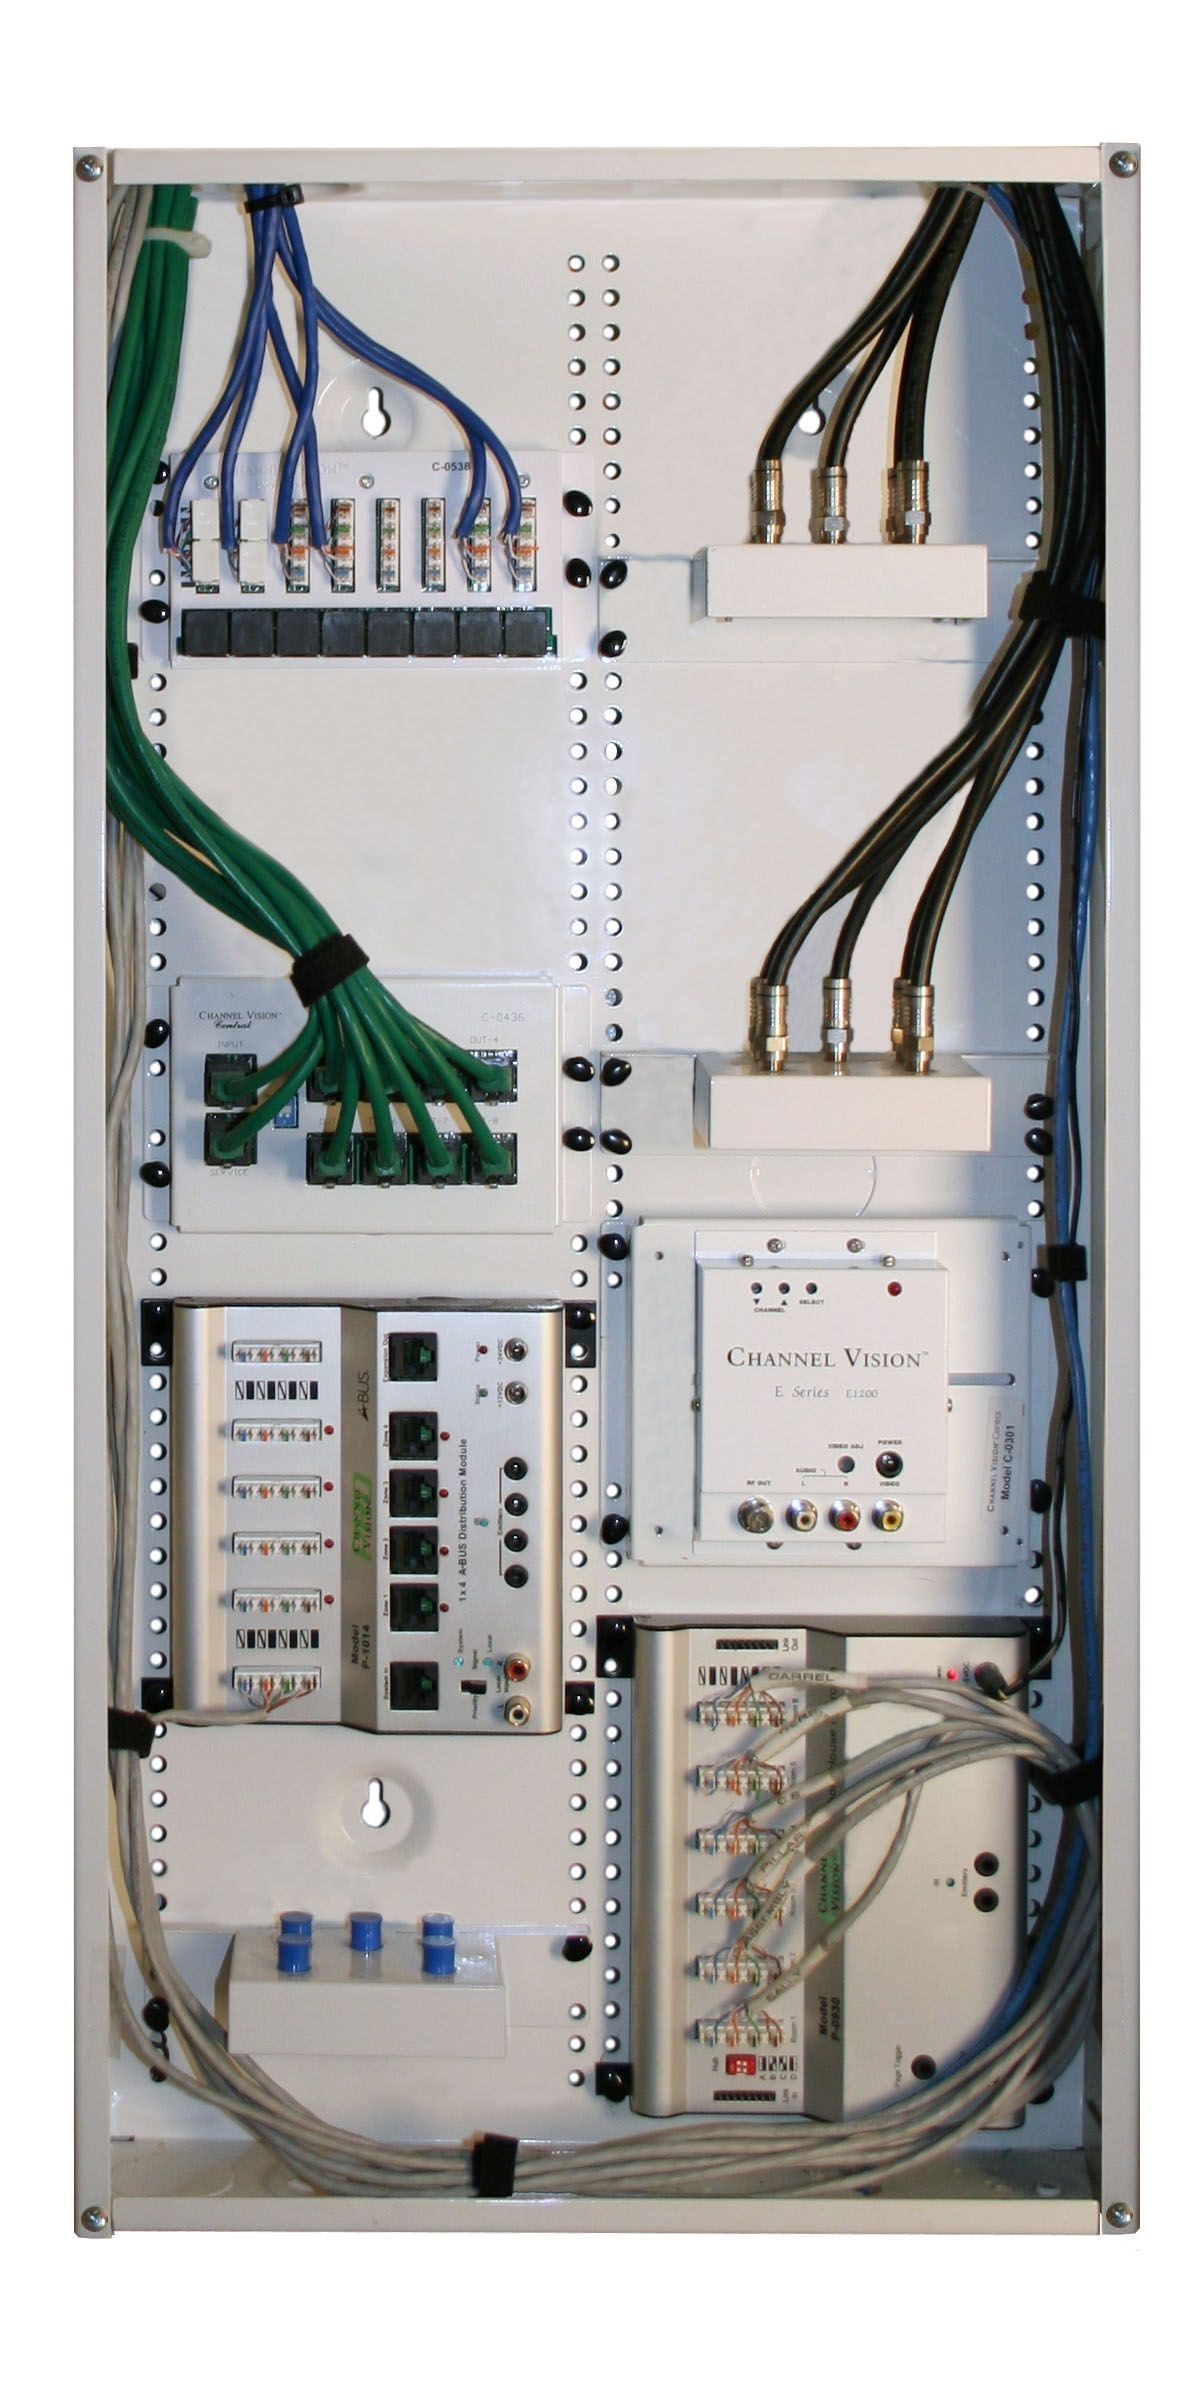 Structured Wiring Cable Distribution Panel for Home TV Internet ...